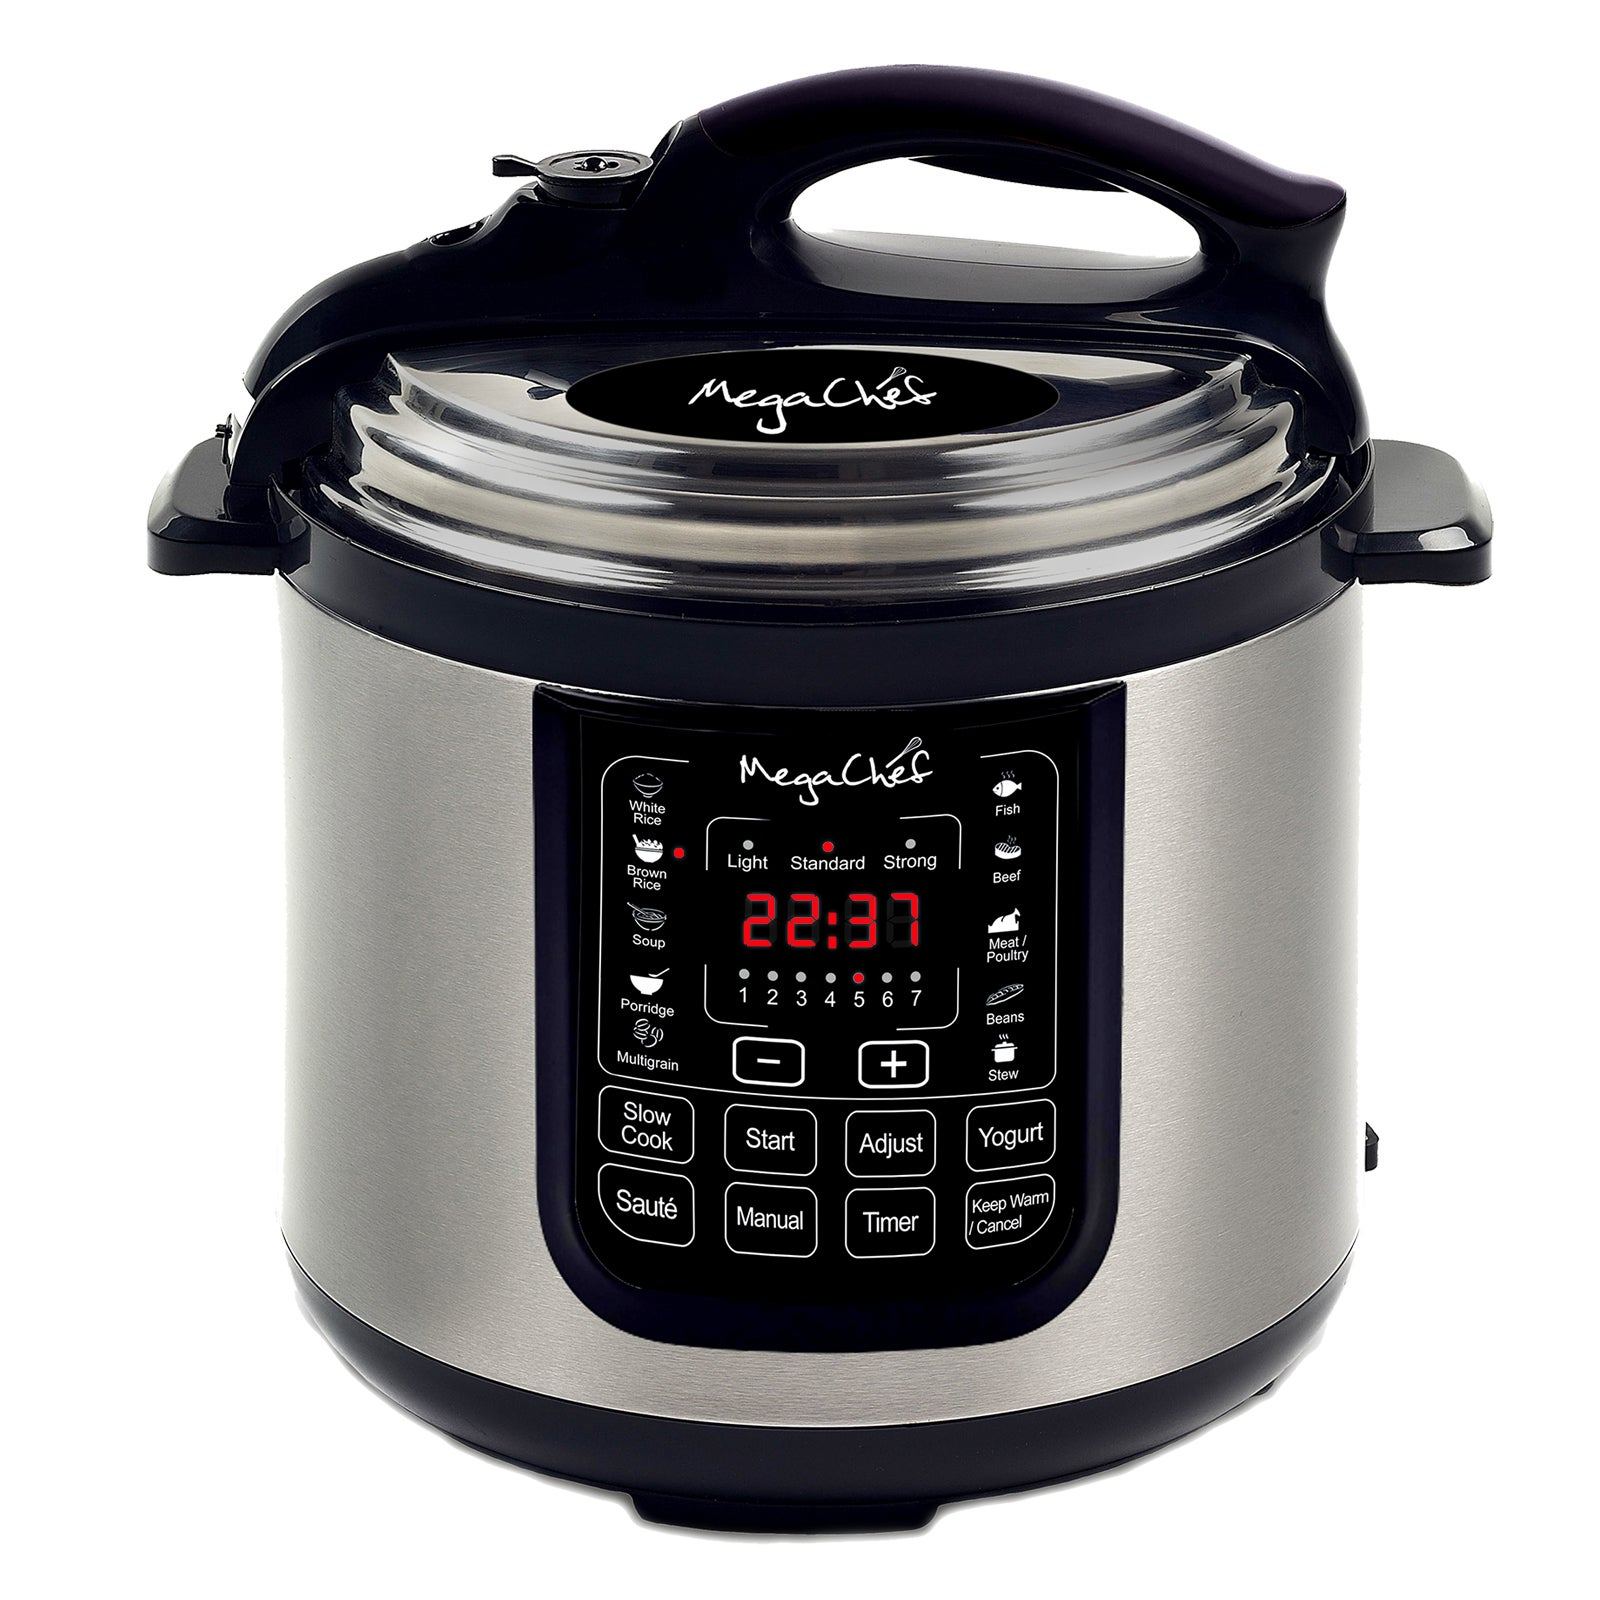 Megachef 8 Quart Digital Pressure Cooker With 13 Pre Set Multi Function Features